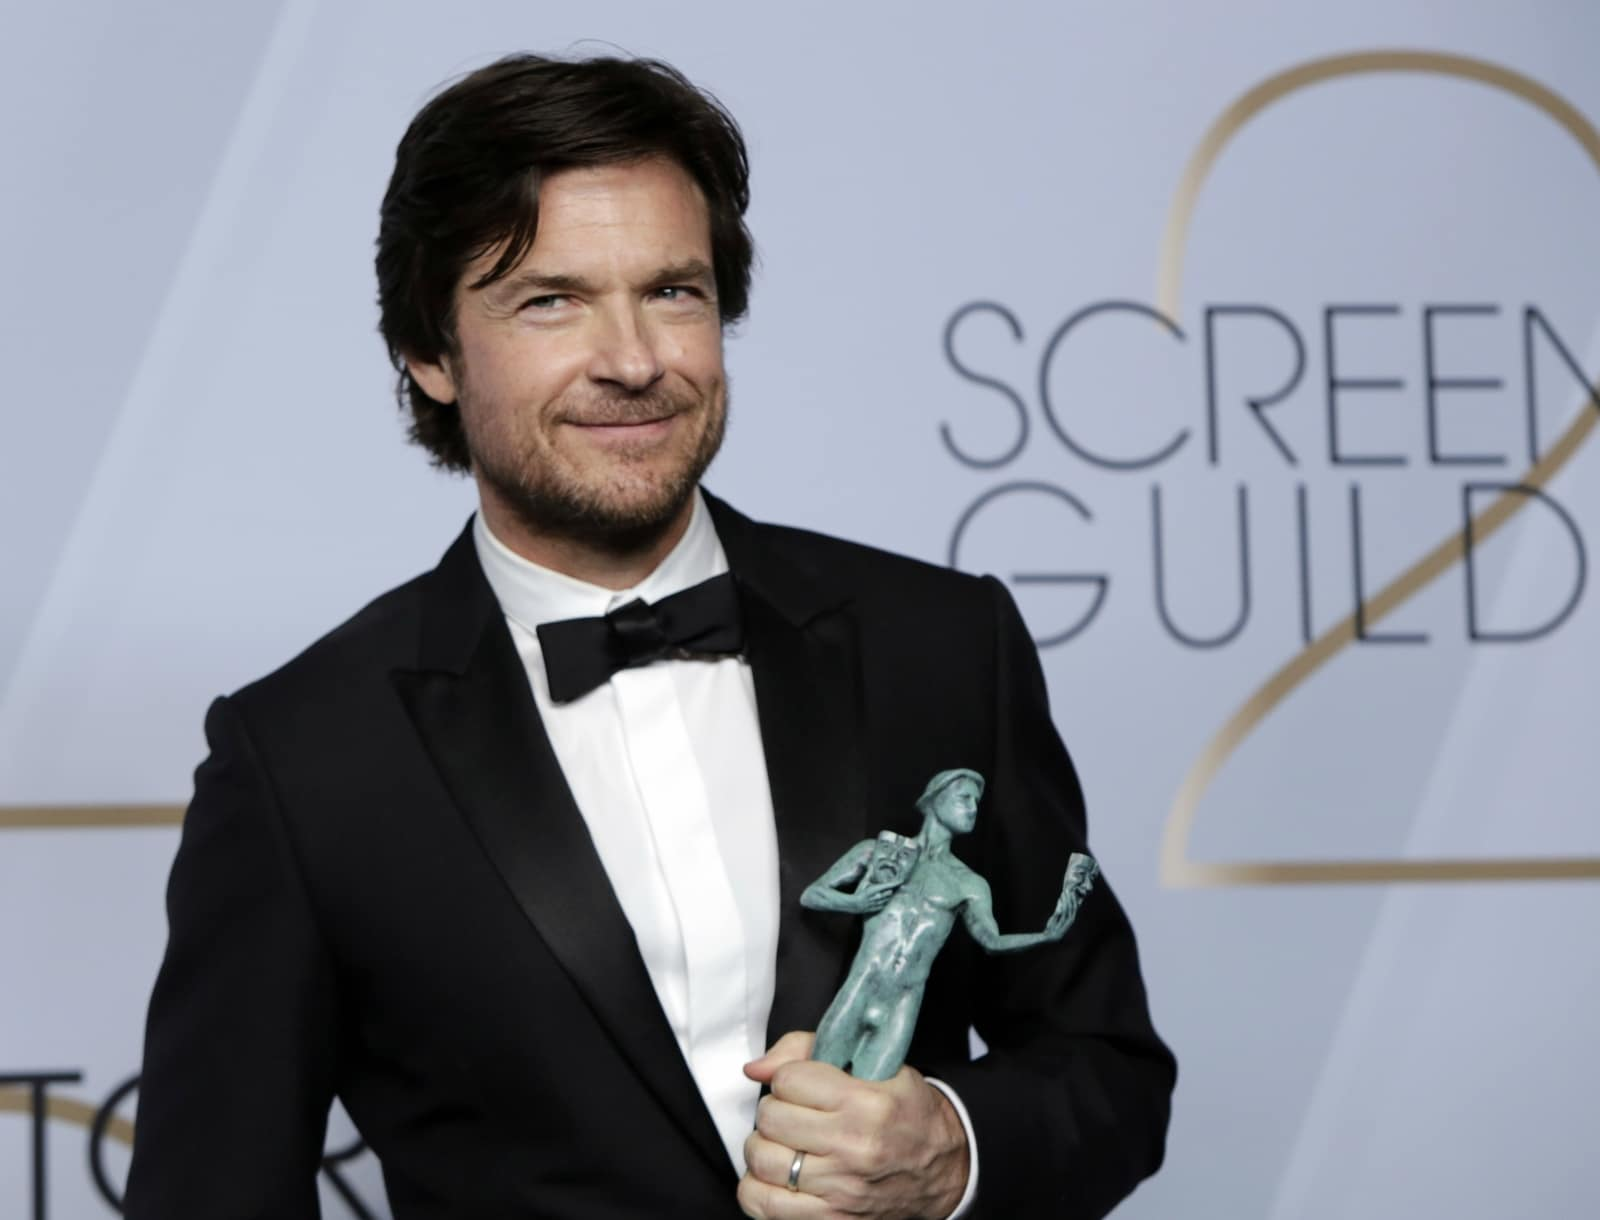 25th Screen Actors Guild Awards – Photo Room – Los Angeles, California, US, January 27, 2019 - Jason Bateman poses backstage with his Outstanding Performance by a Male Actor in a Drama Series award for